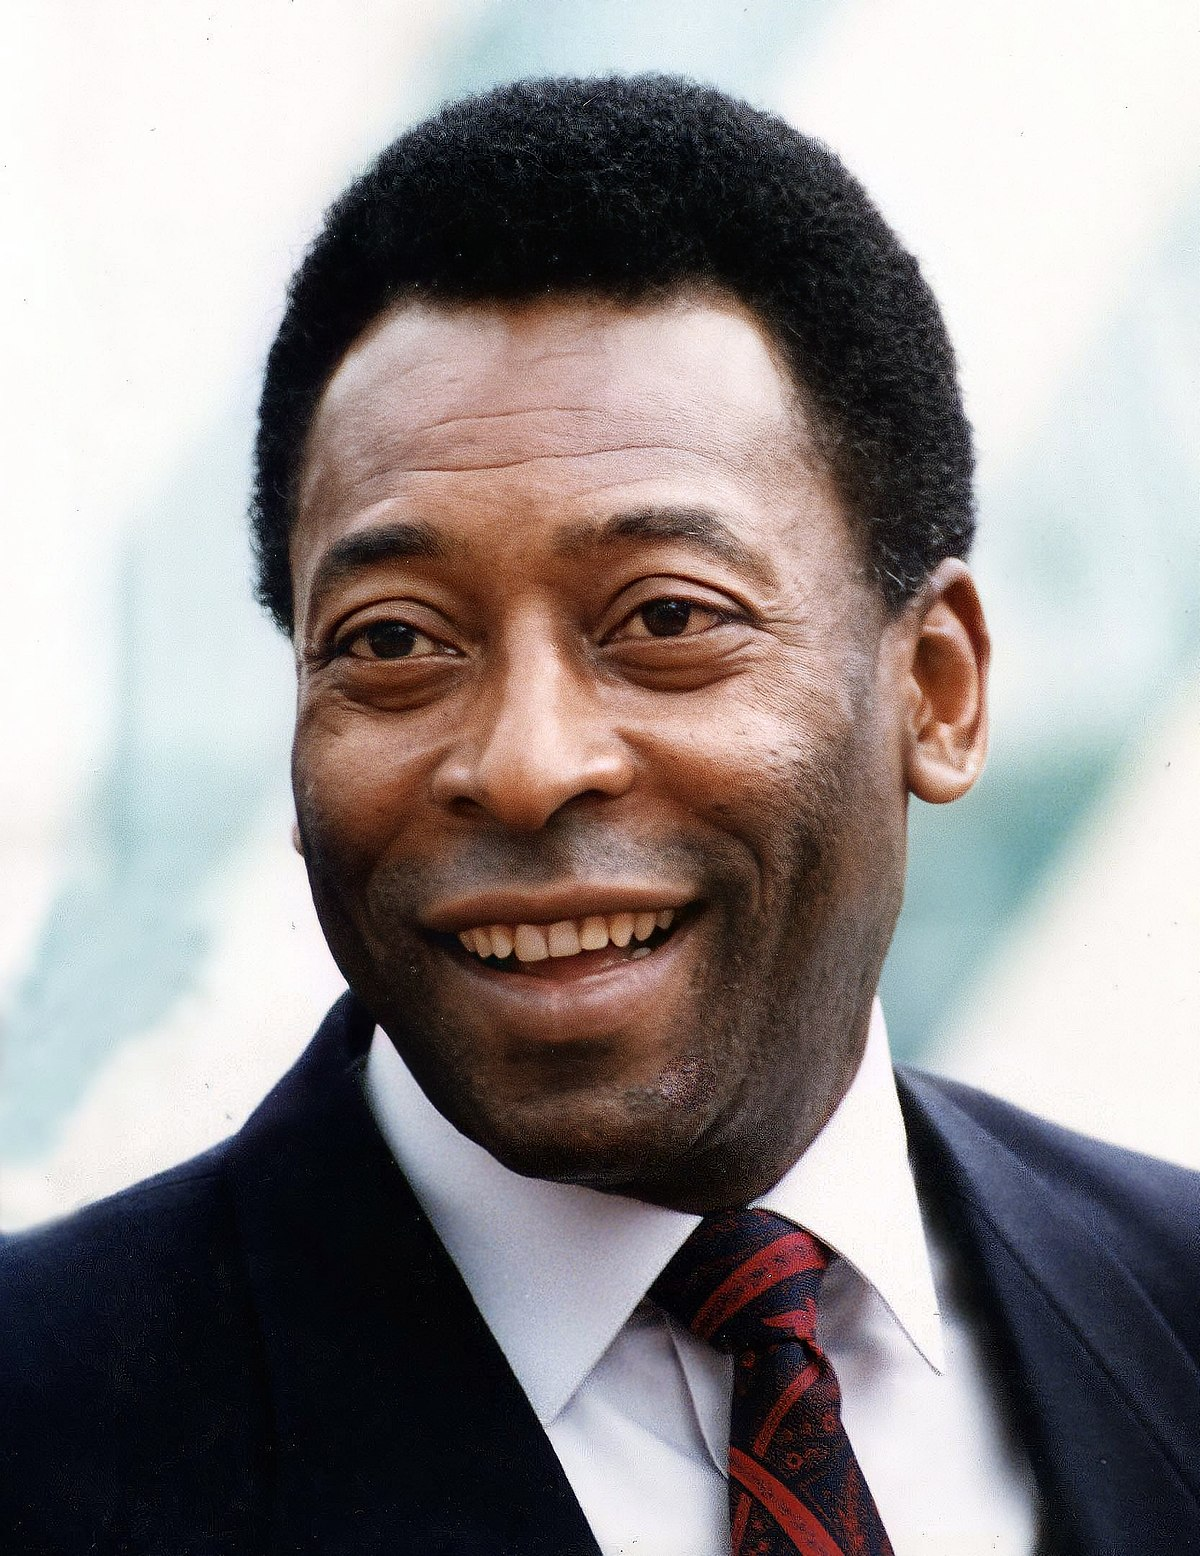 Sports News Roundup: Soccer-Pele sings for Santos as recovery continues; Golf-Garcia's wife calls on US Ryder Cup fans to cheer not jeer and more